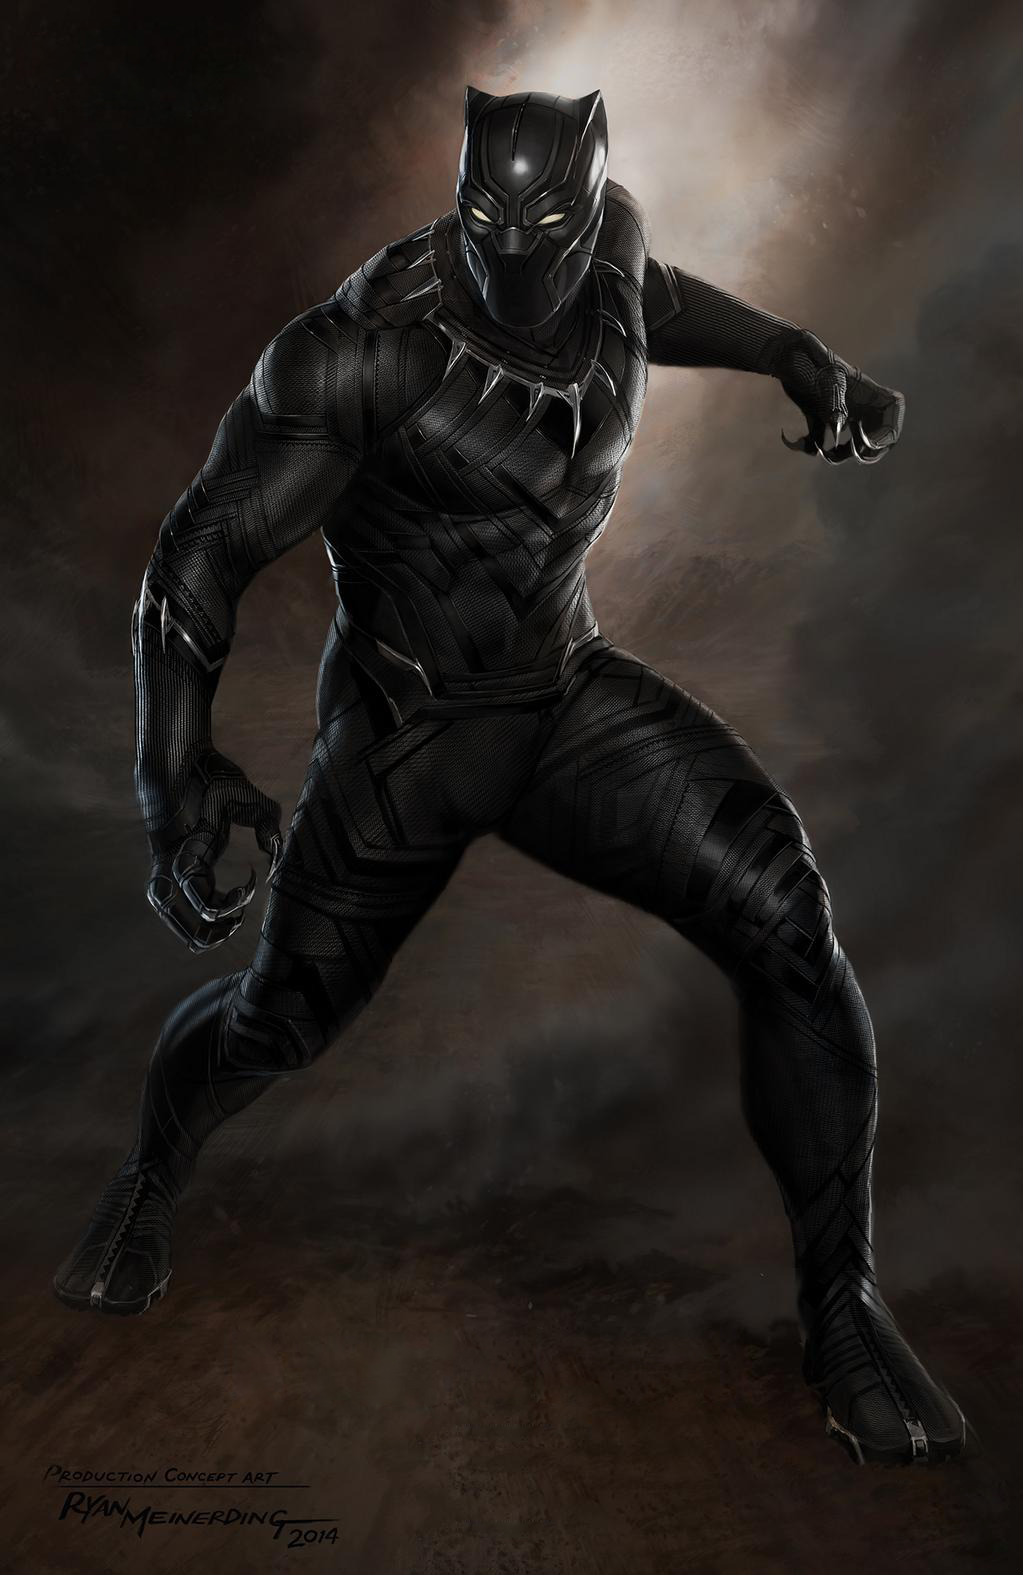 http://vignette1.wikia.nocookie.net/marvelcinematicuniverse/images/5/5b/Black_Panther_Promo_Textless.png/revision/latest?cb=20150510210912&path-prefix=es